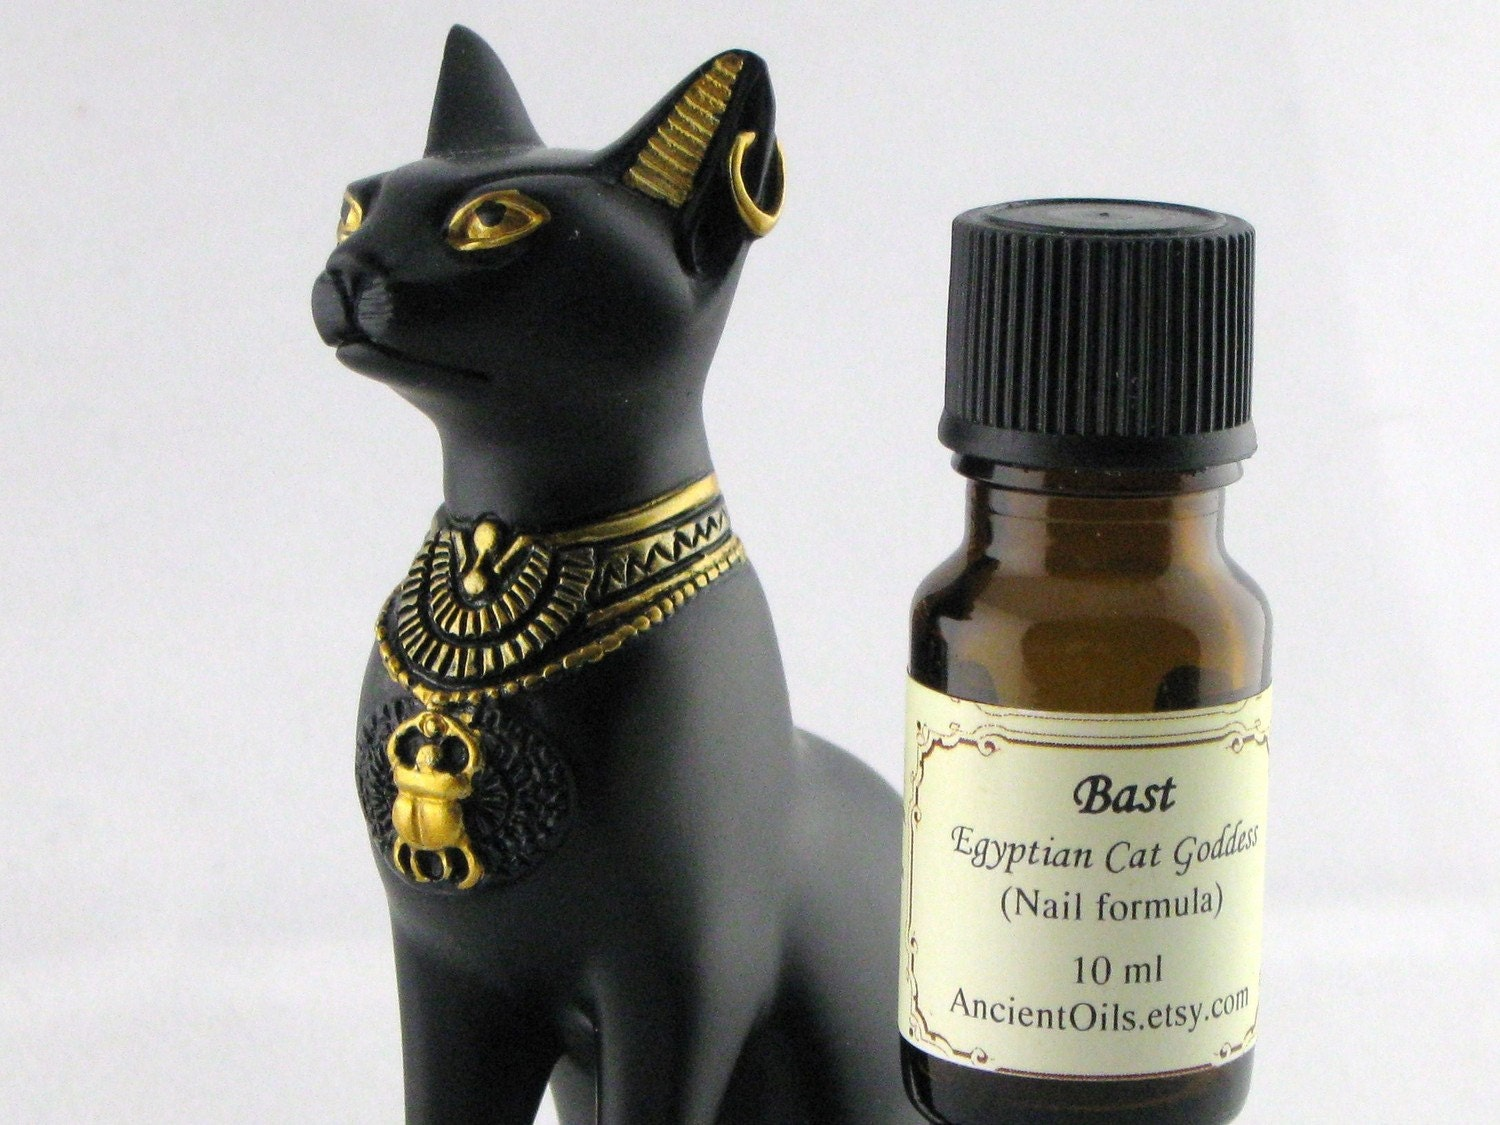 Bast - Egyptian Cat Goddess Nail Formula    (Improved Formula)     10 ml